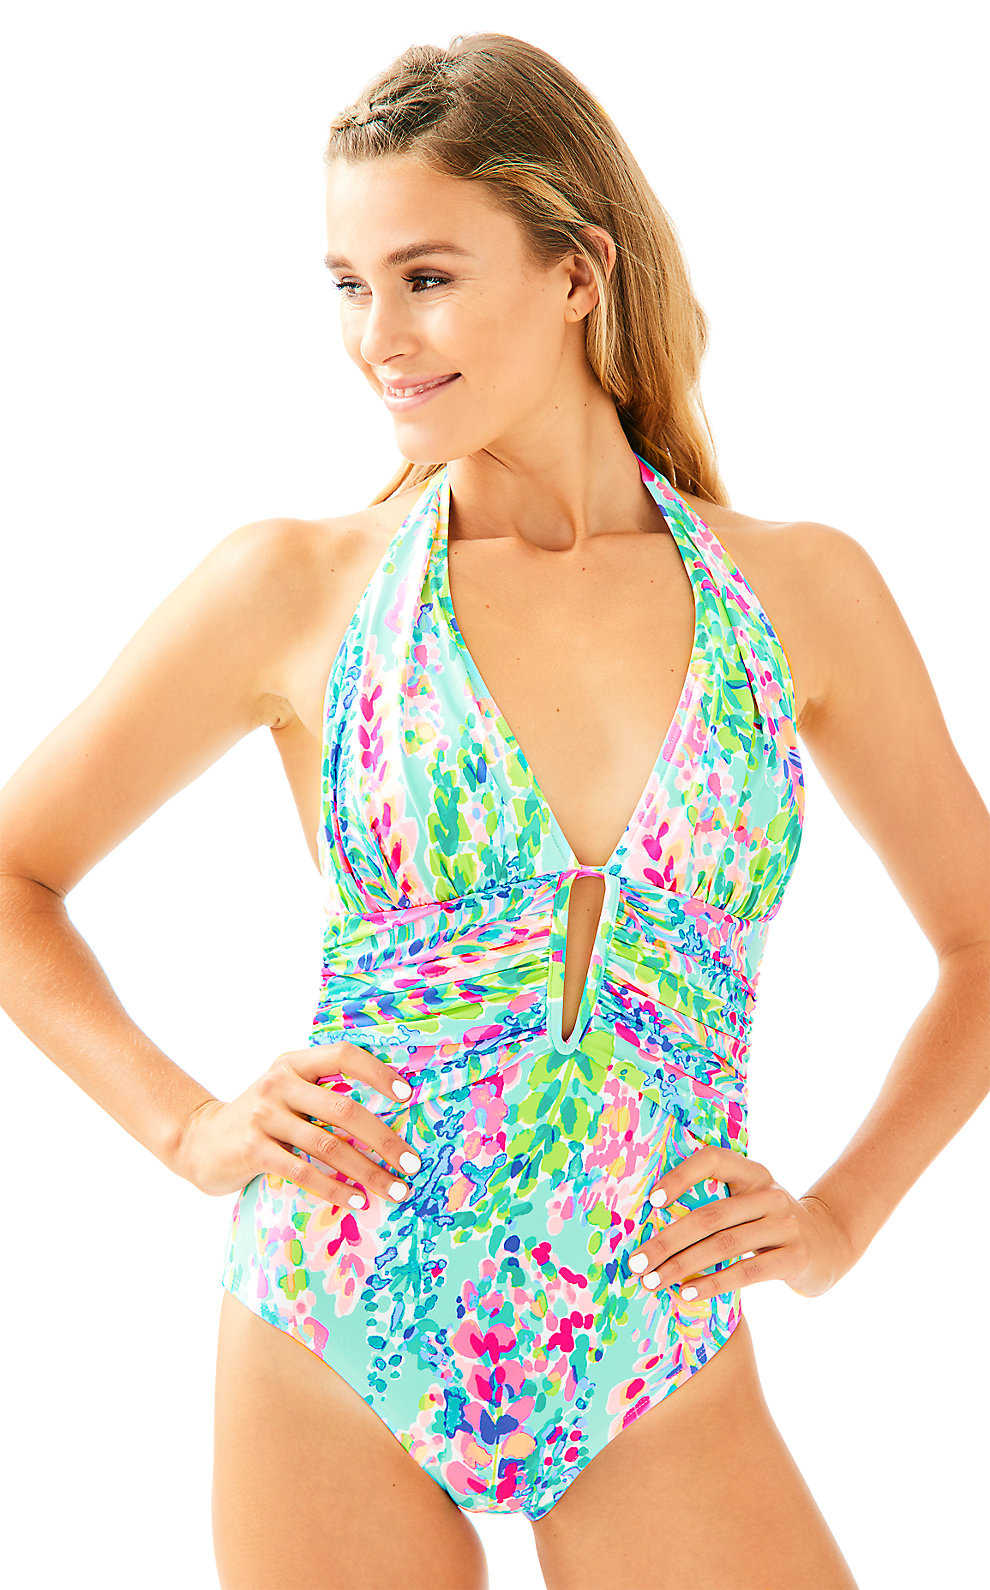 Lilly Pulitzer Lilly Pulitzer Lanai Halter One Piece Suit